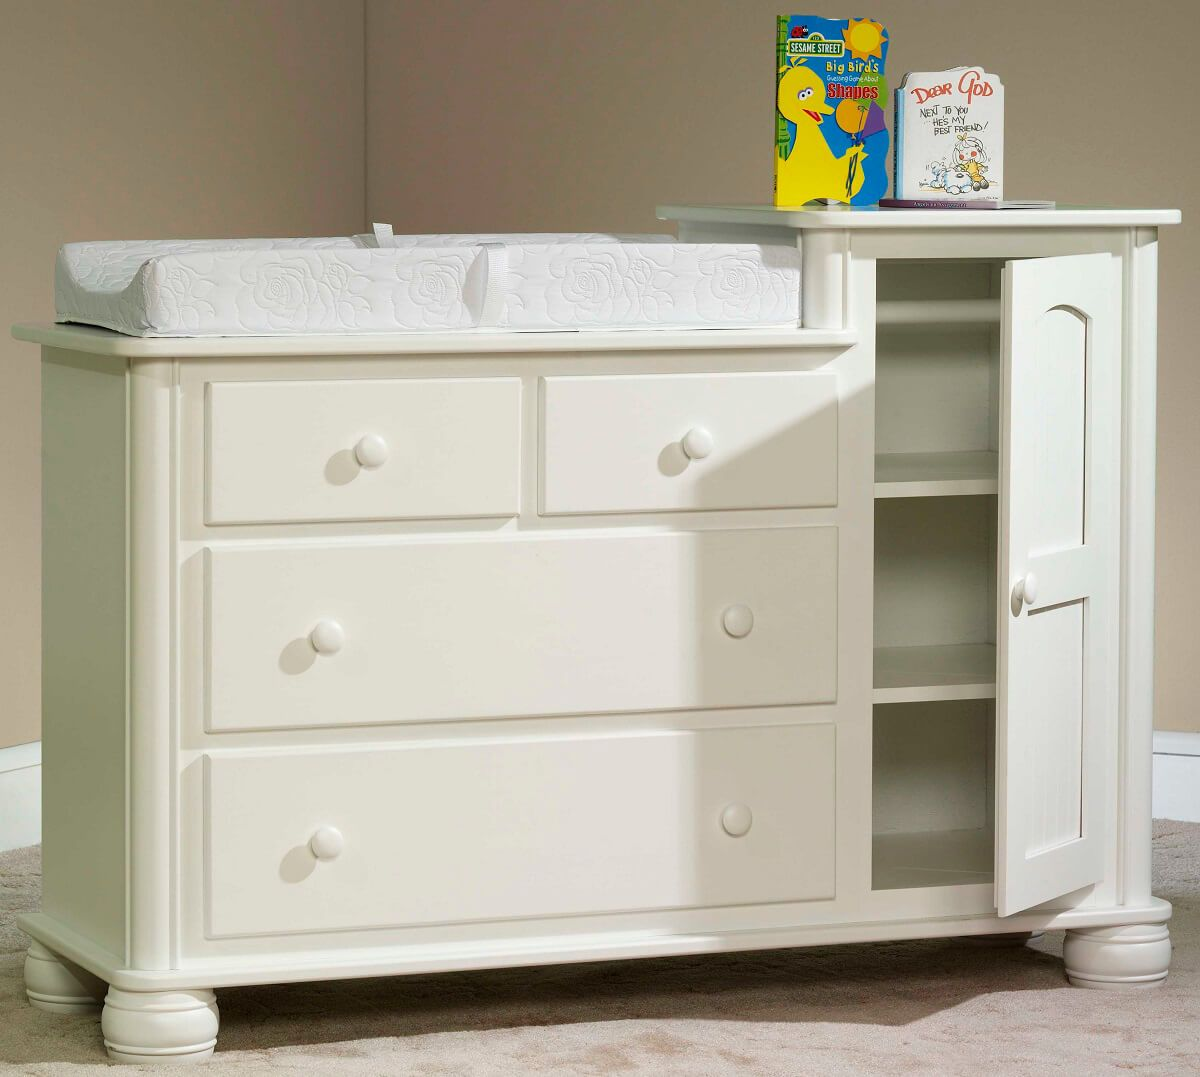 Denbigh Changing Table in Brown Maple painted white